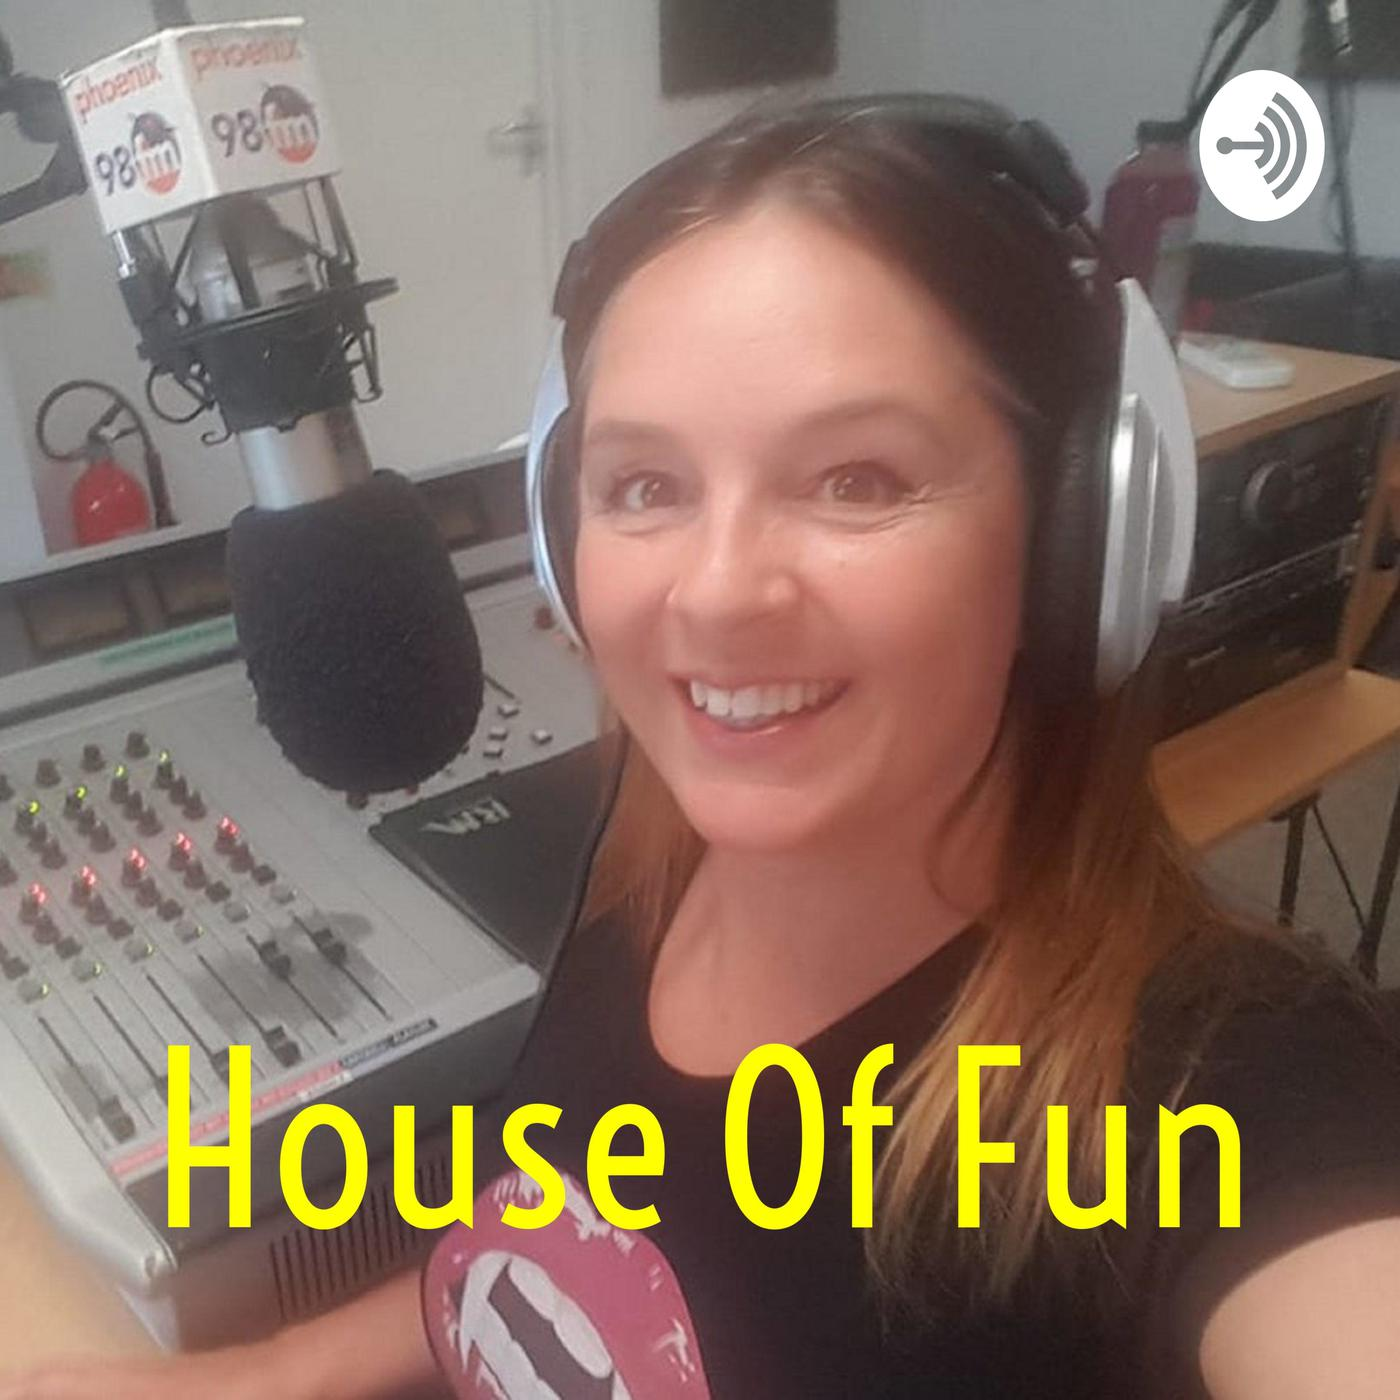 House Of Fun on Phoenix FM (podcast) - Karin Ridgers